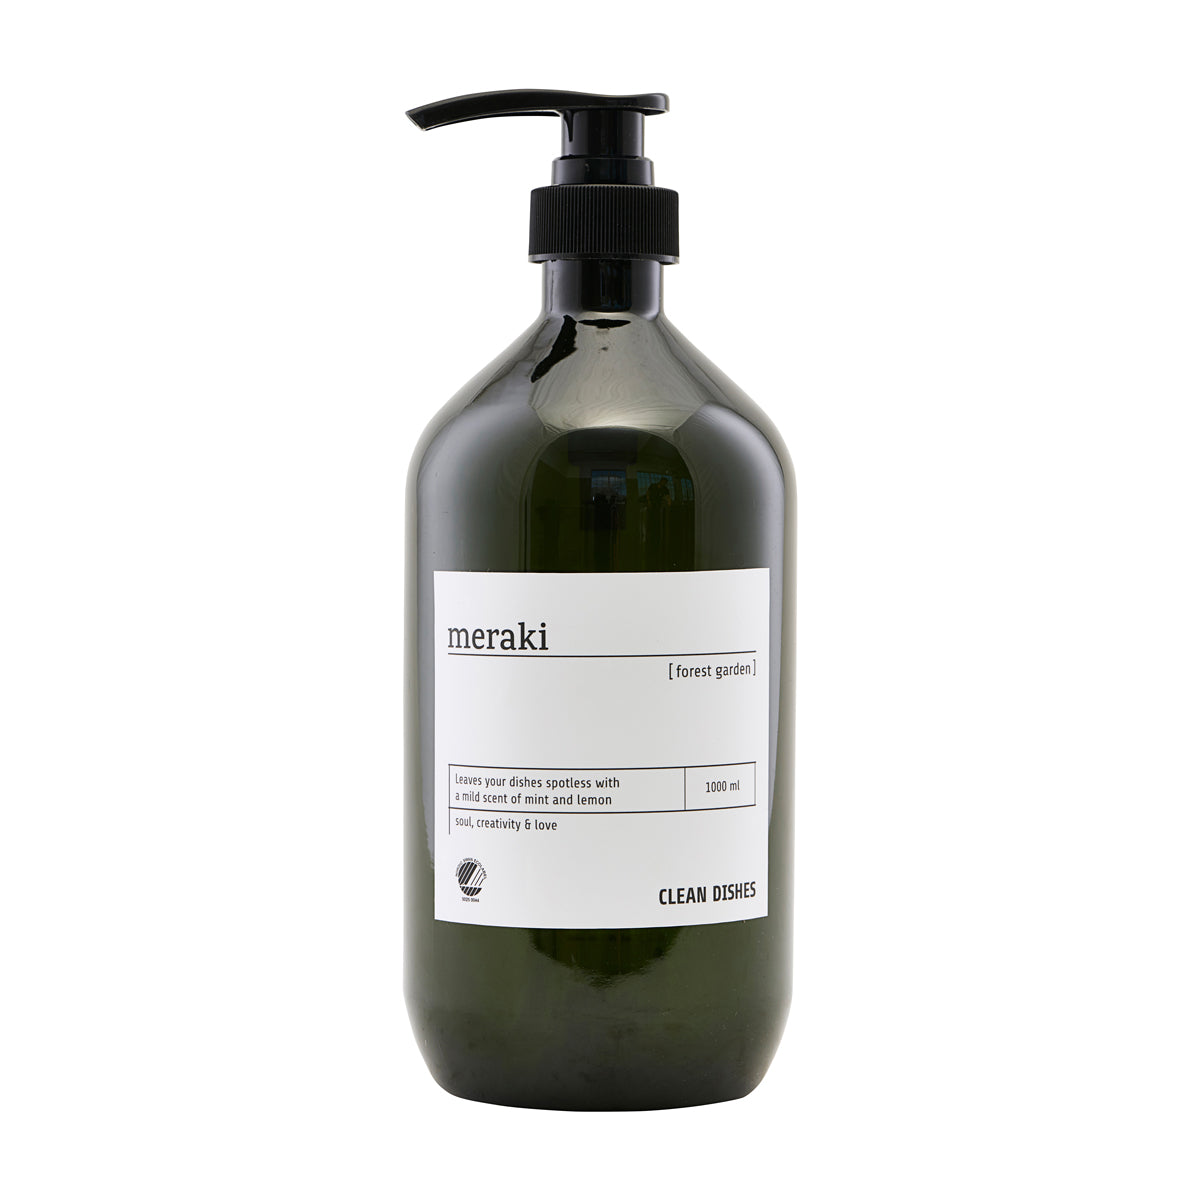 Meraki Dish wash, Forest garden, h: 24.4 cm, 1000 ml/33.8 fl.oz